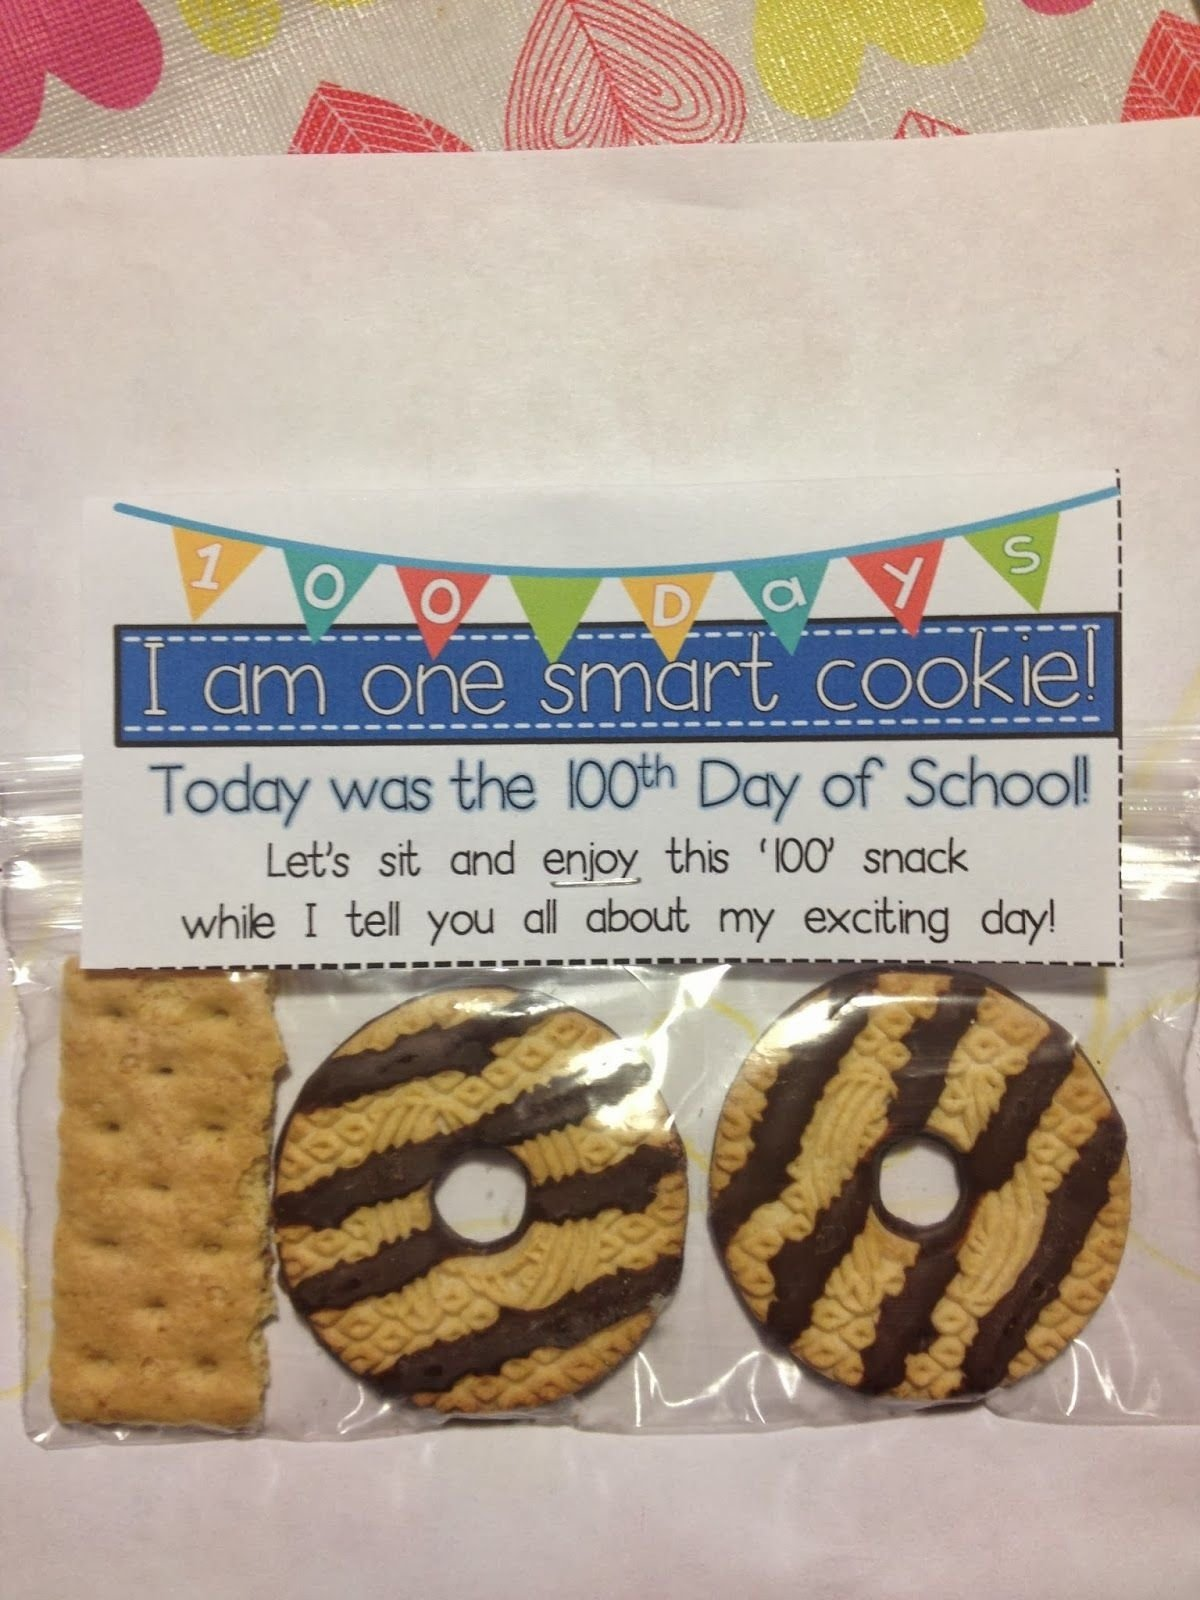 10 Attractive Snack Ideas For Kindergarten Class the 100th day finally came nice treat to celebrate the day one 2020